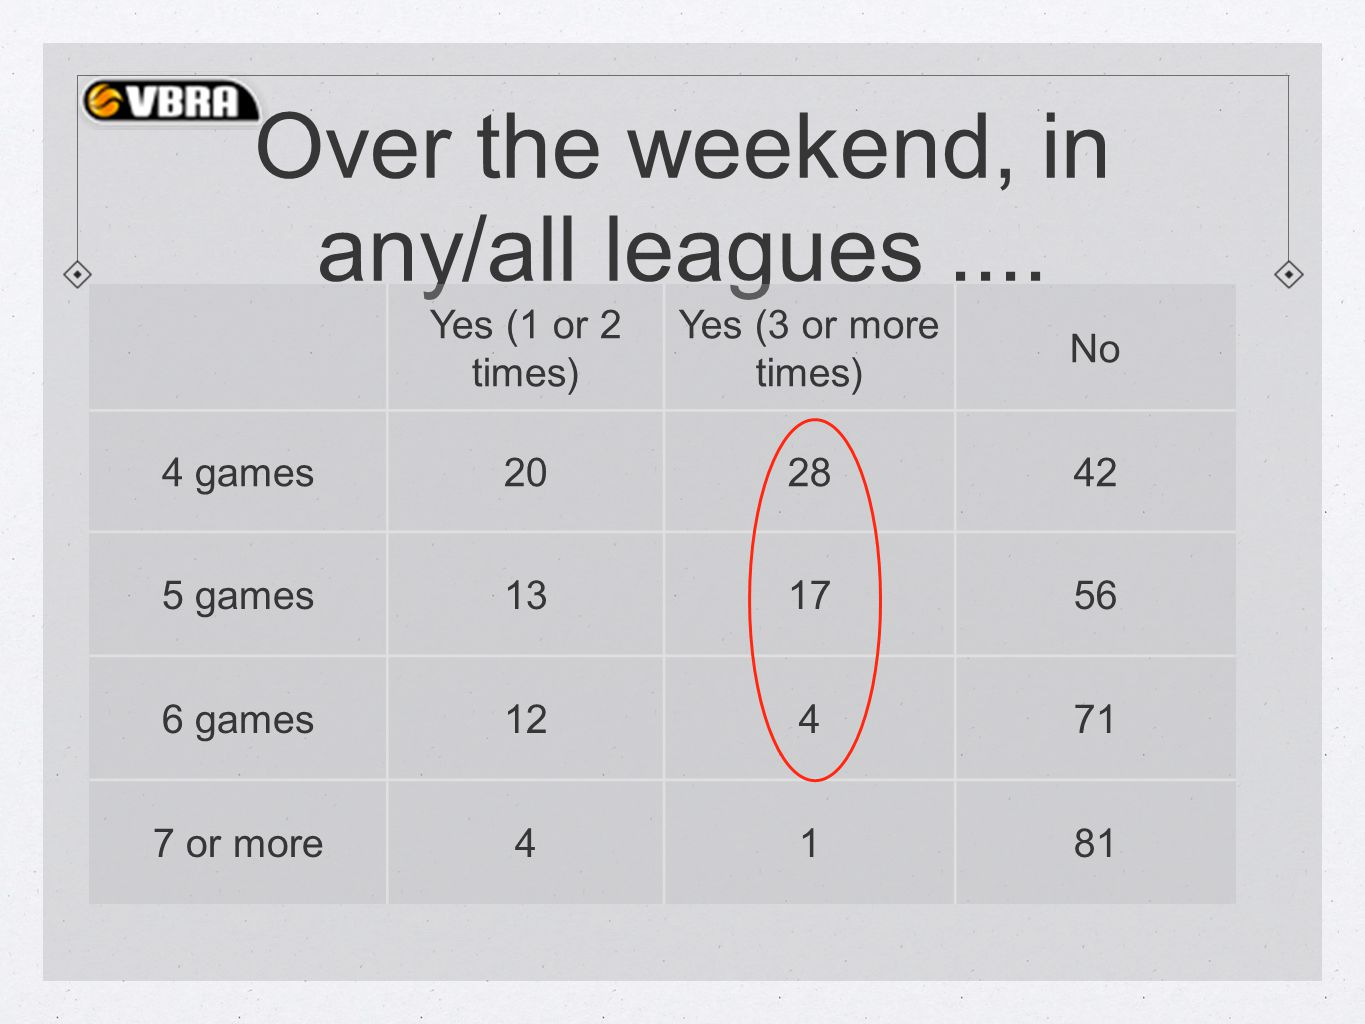 Over the weekend, in any/all leagues....